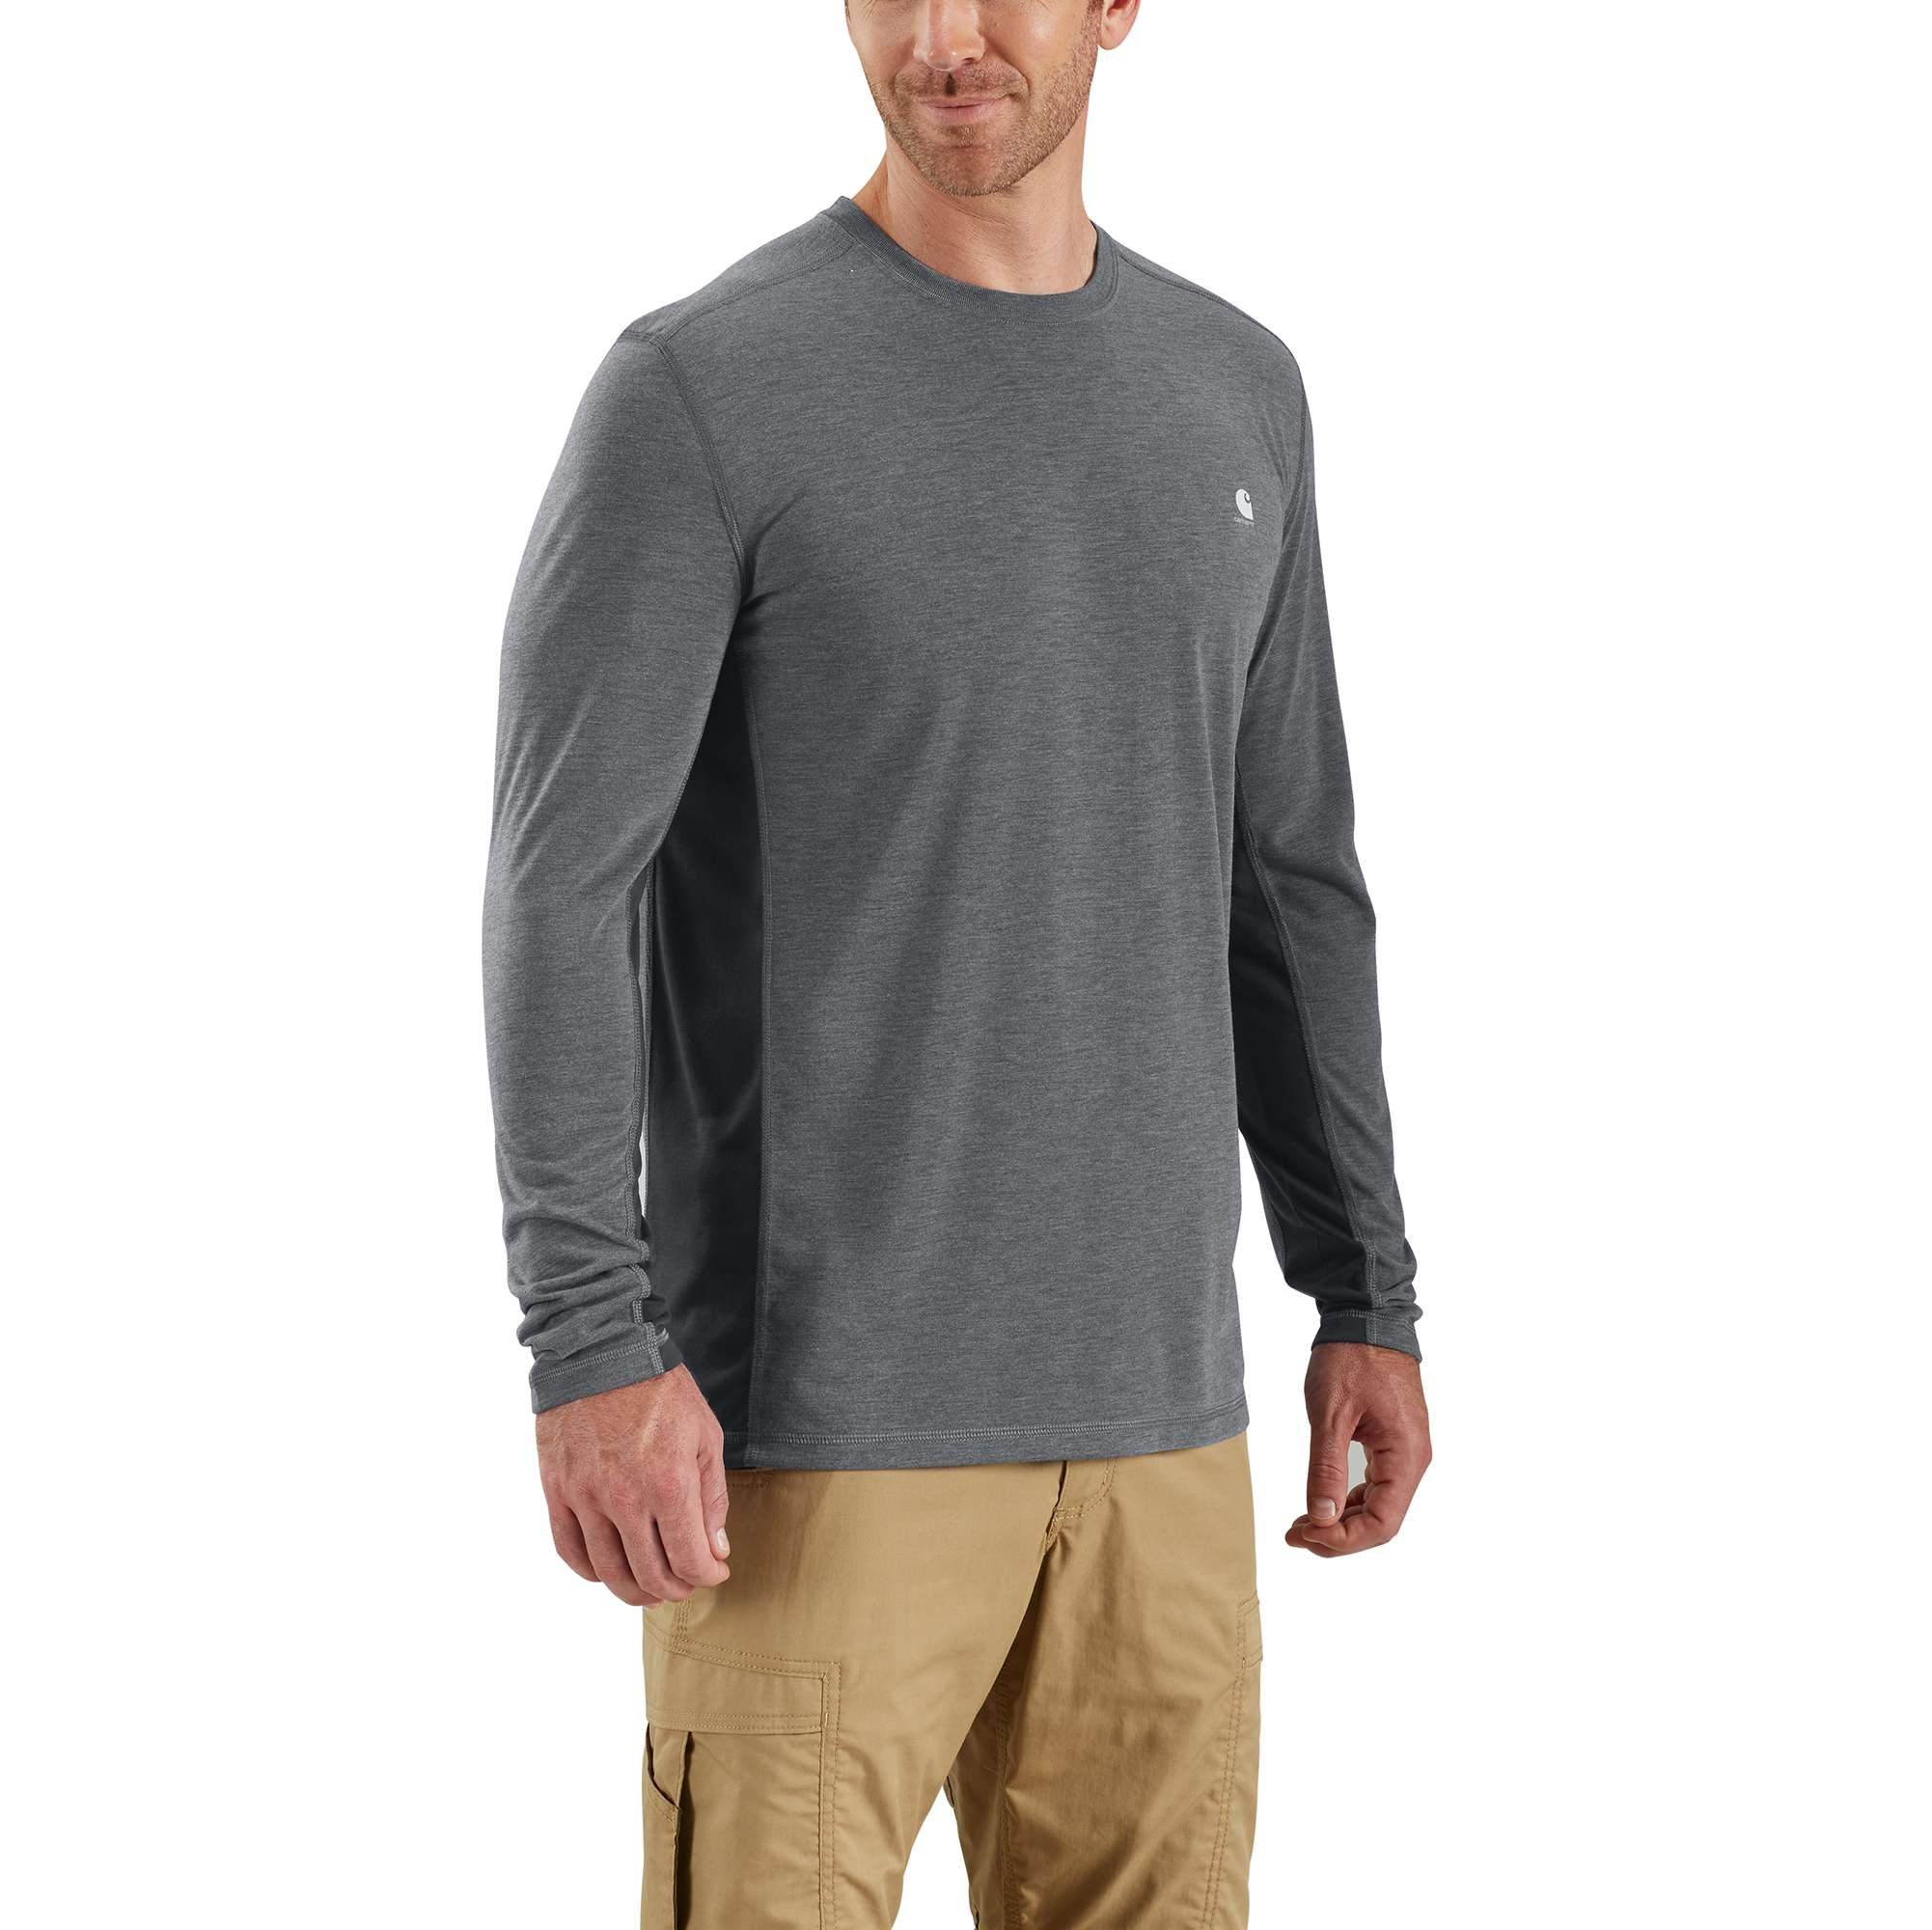 Carhartt Force Extremes Long-Sleeve T-Shirt